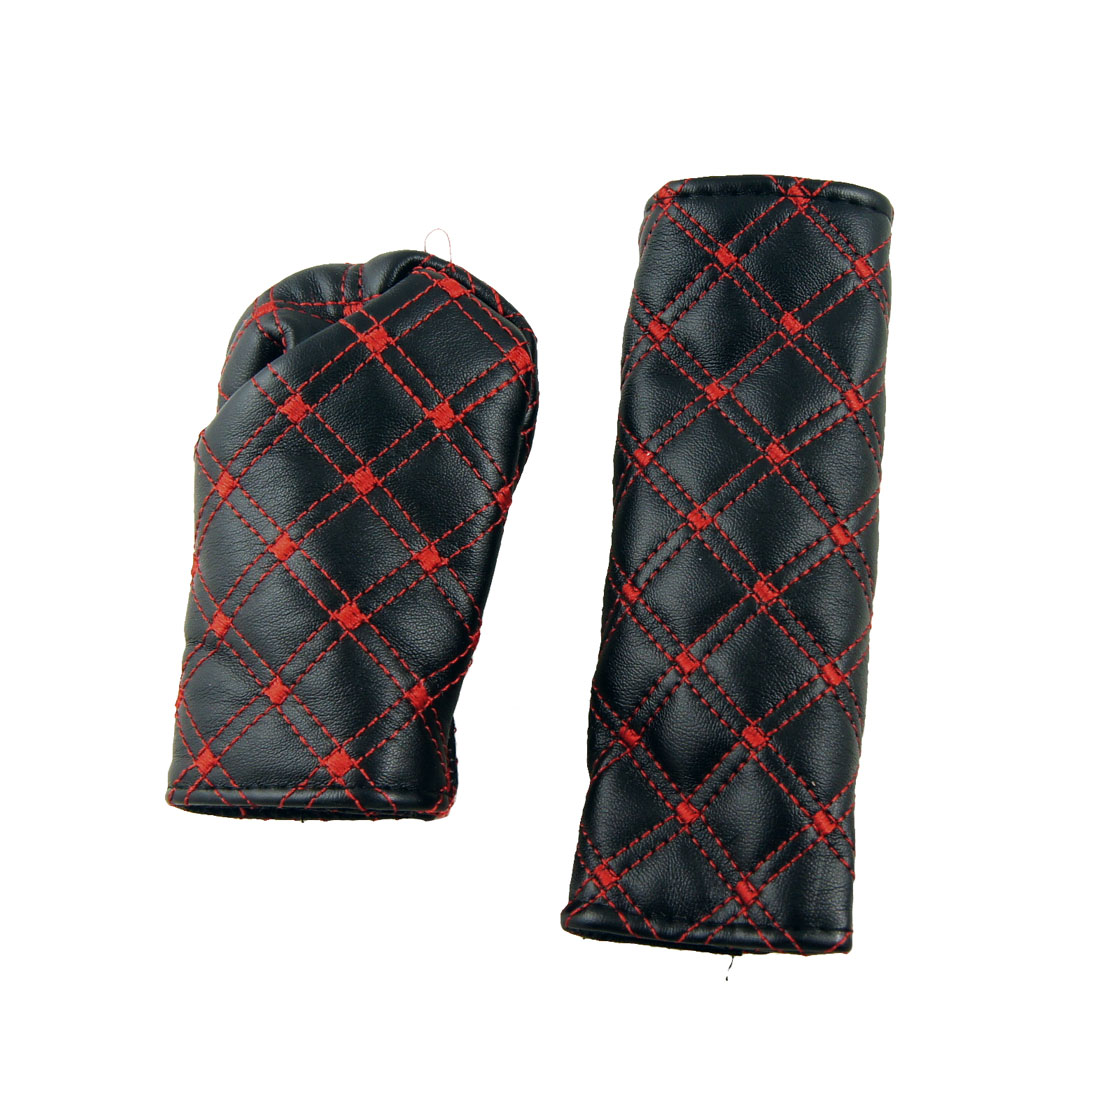 2 in 1 Universal Faux Leather Gear Knob Hand Brake Cover Kit Red Black